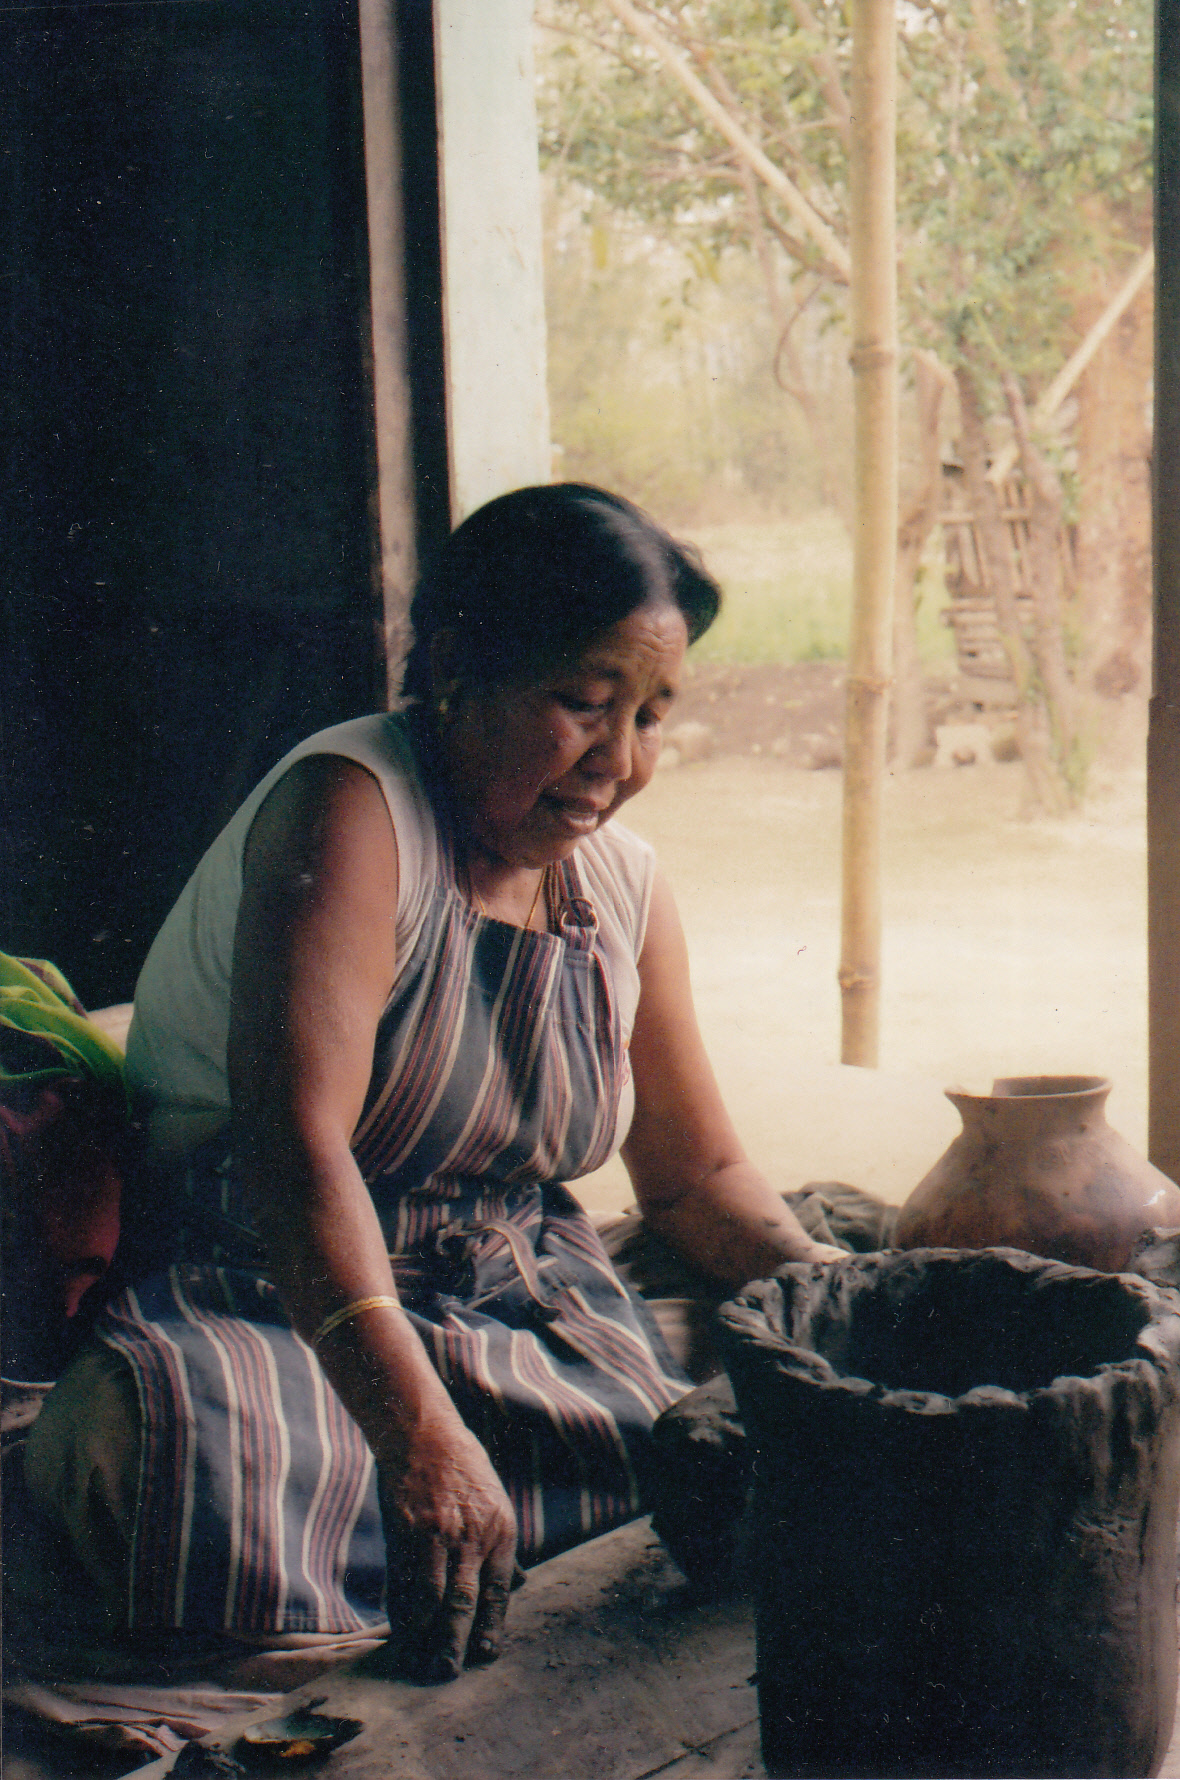 Neelmani Devi is the potter woman from Manipur who reinvented legend